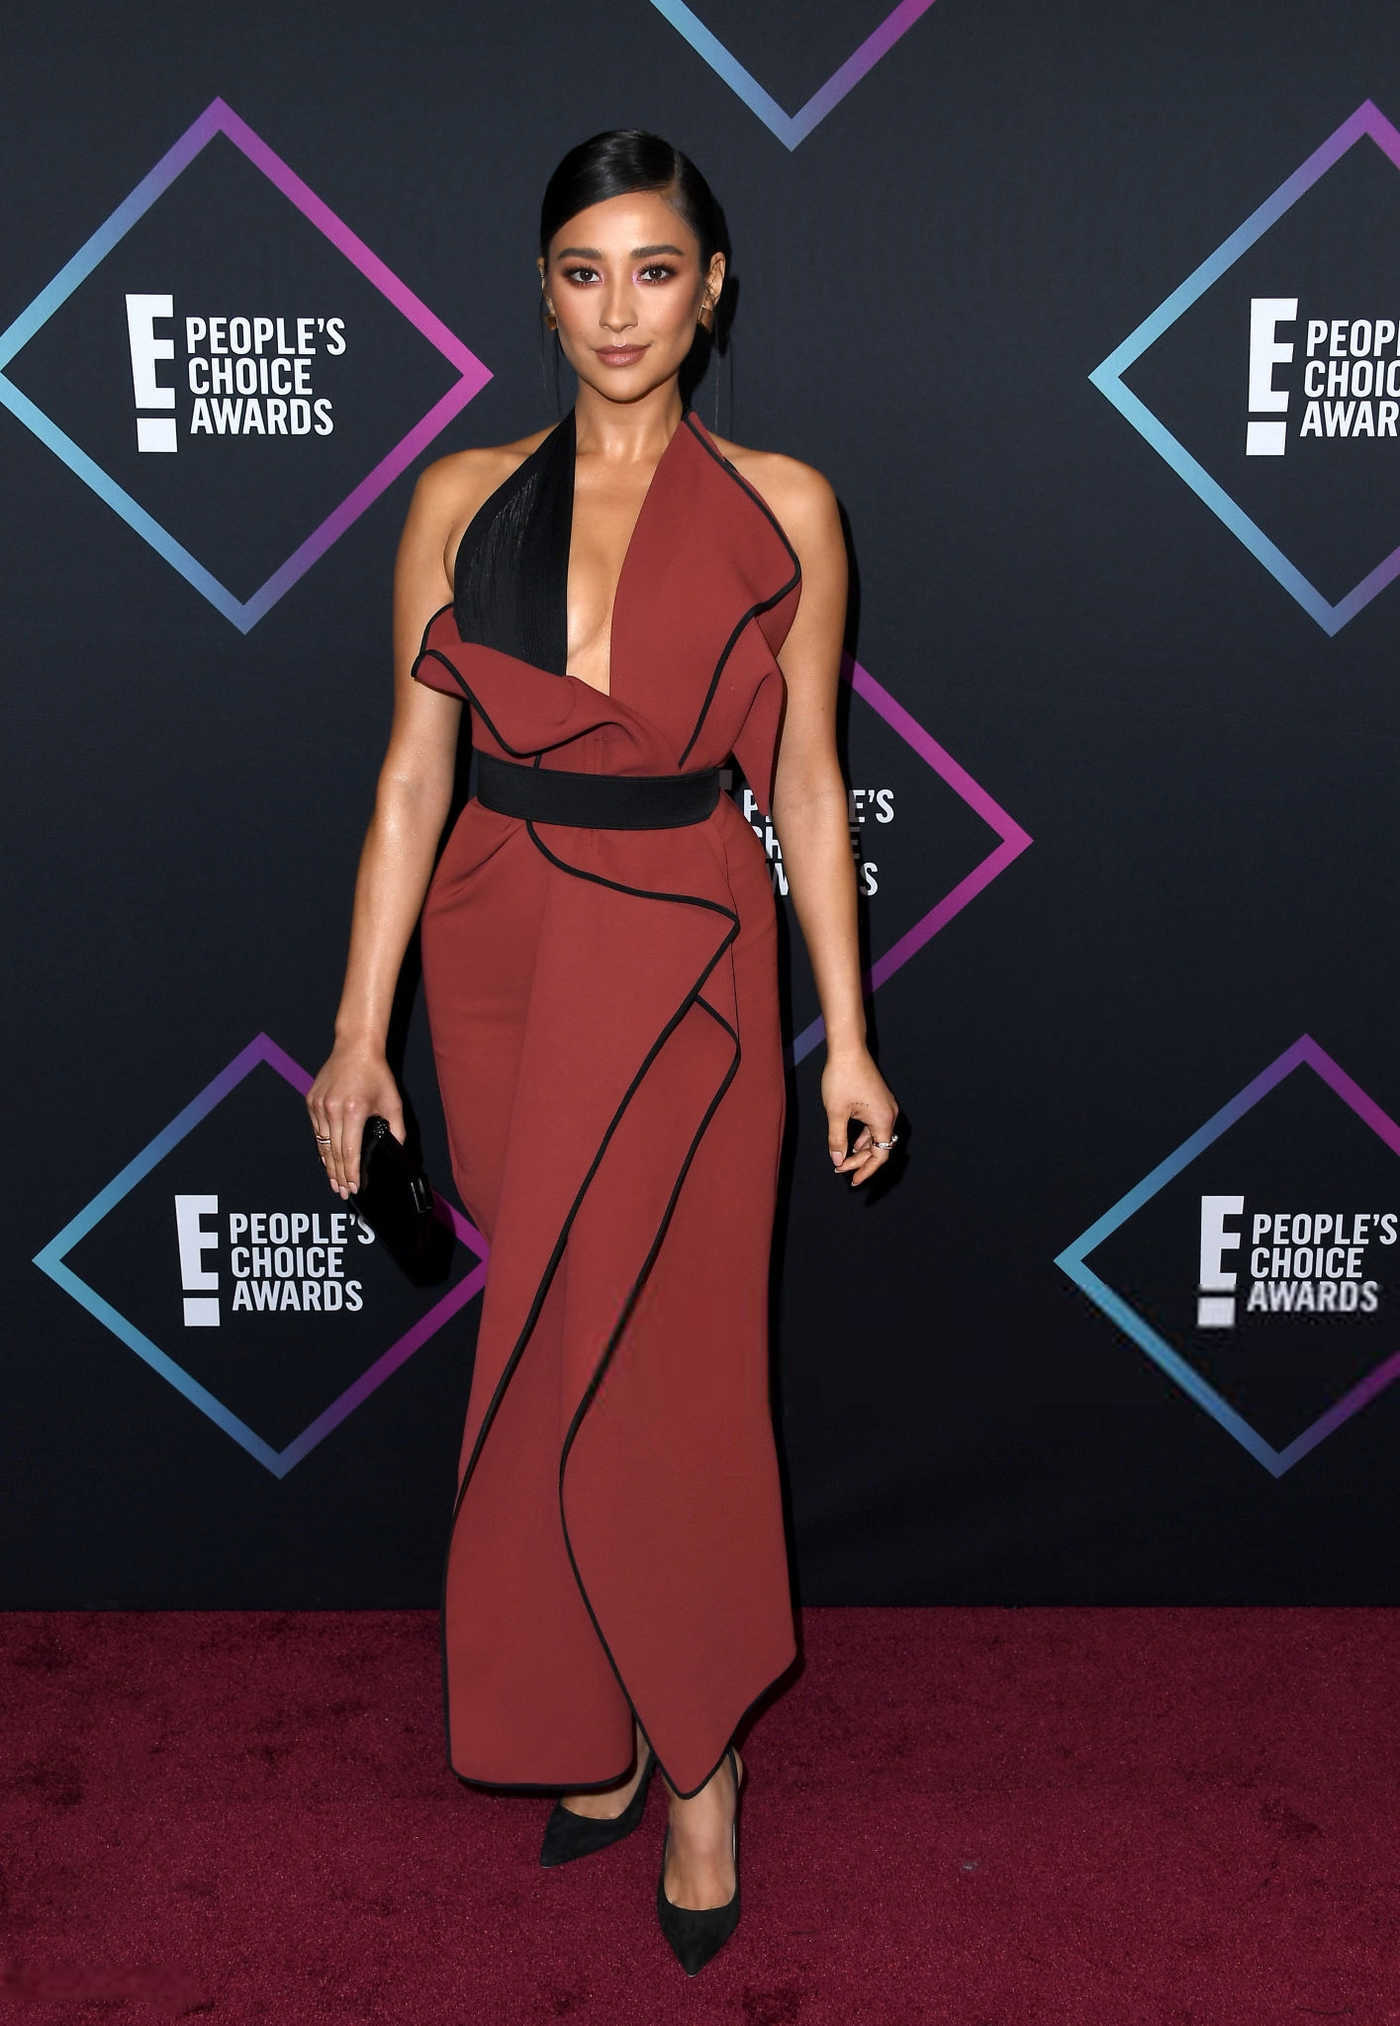 Shay Mitchell Attends 2018 People's Choice Awards in Santa Monica 11/11/2018